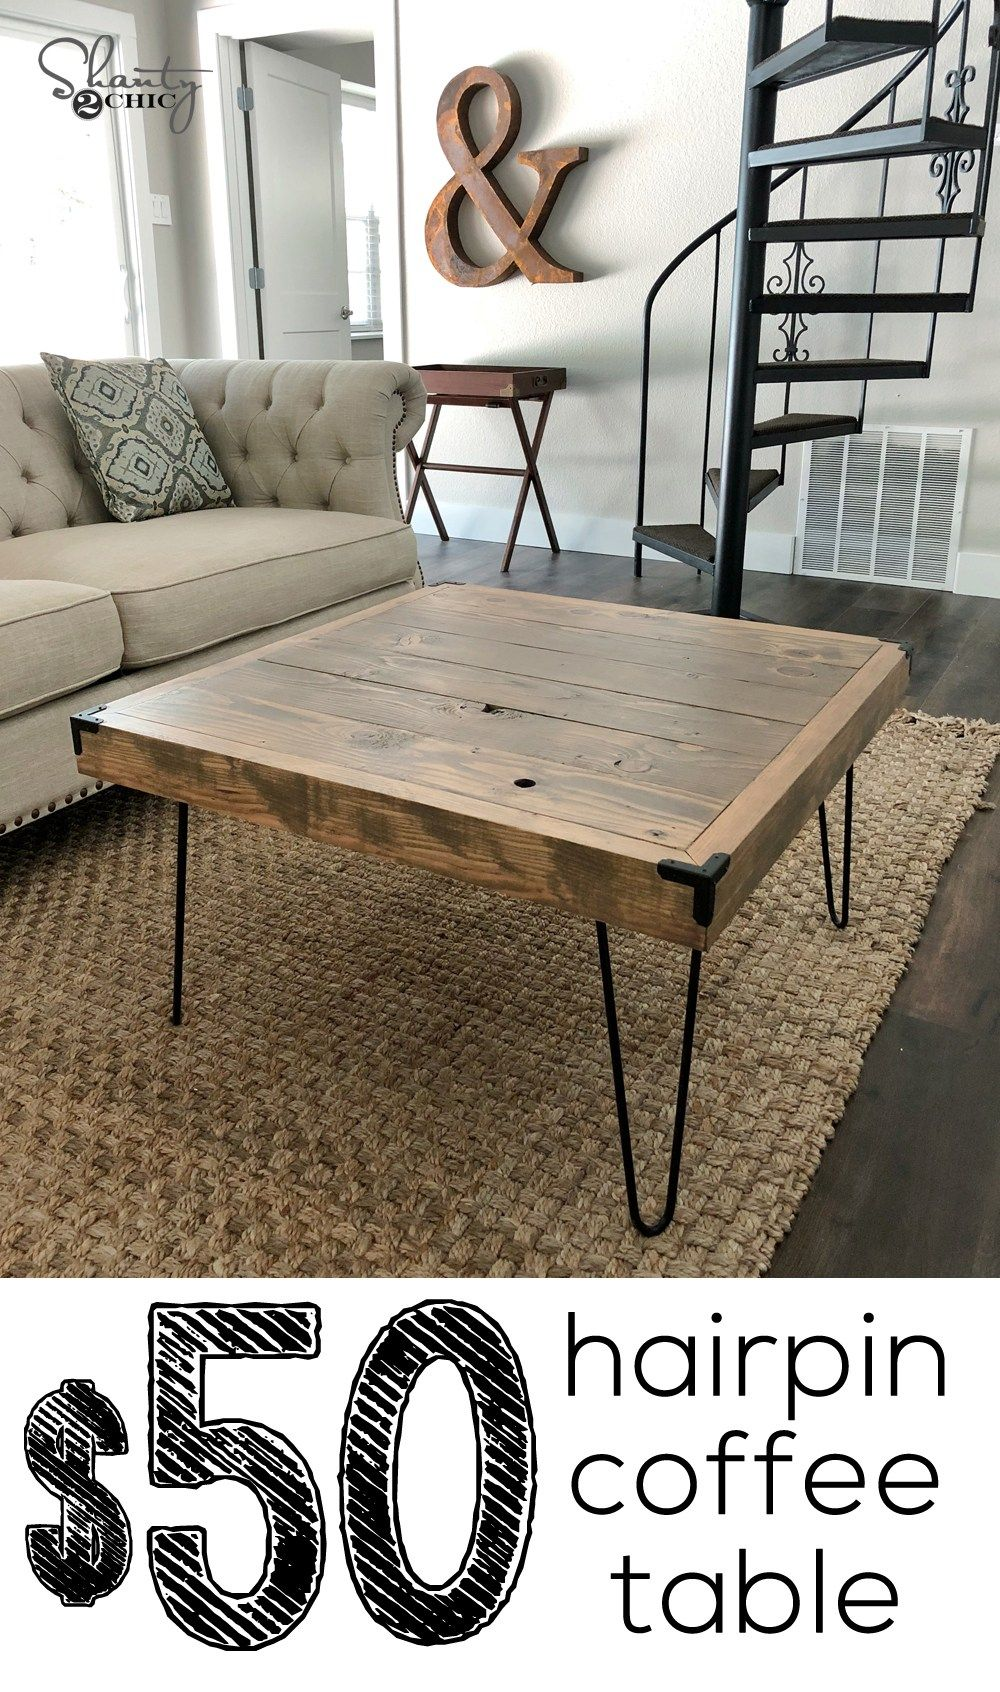 Photo of DIY $50 Hairpin Coffee Table by Shanty2Chic